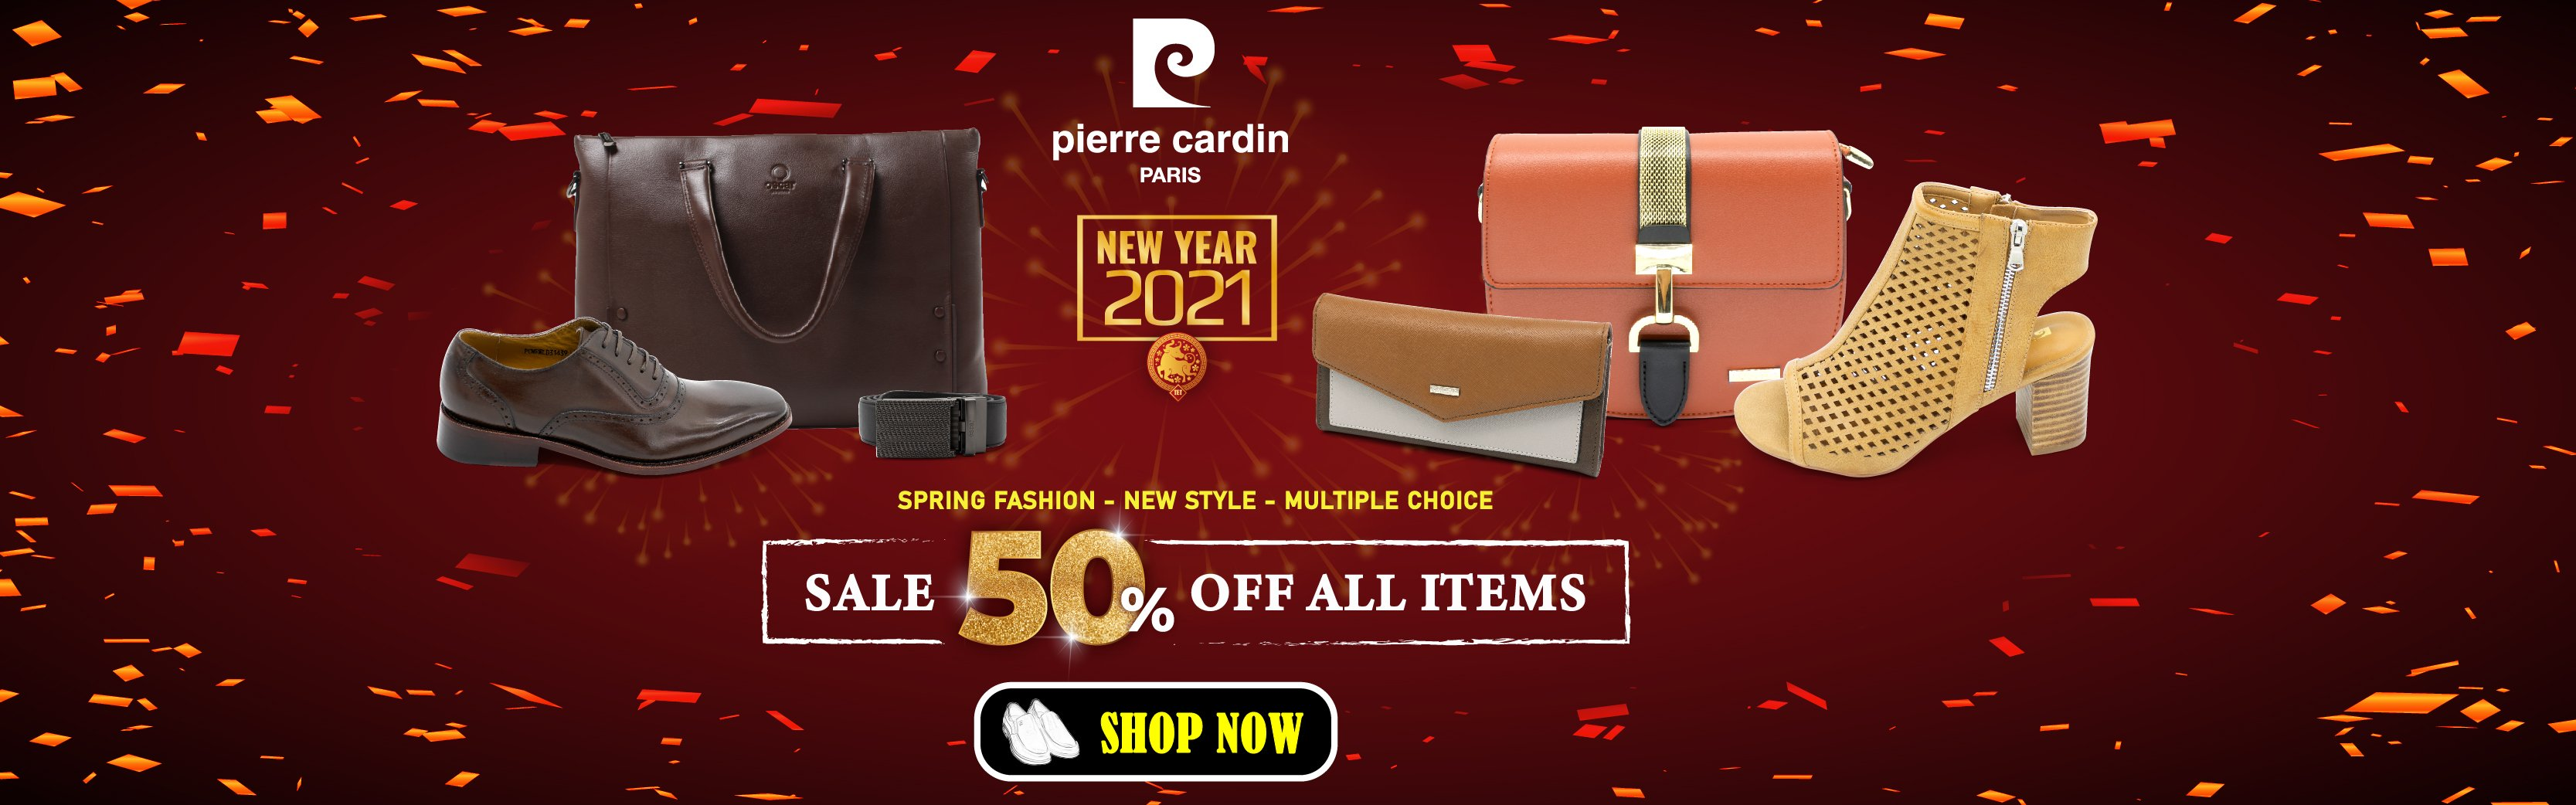 Pierre Cardin Paris Vietnam: BLACK FRIDAY - SALES OFF 50% ALL ITEMS